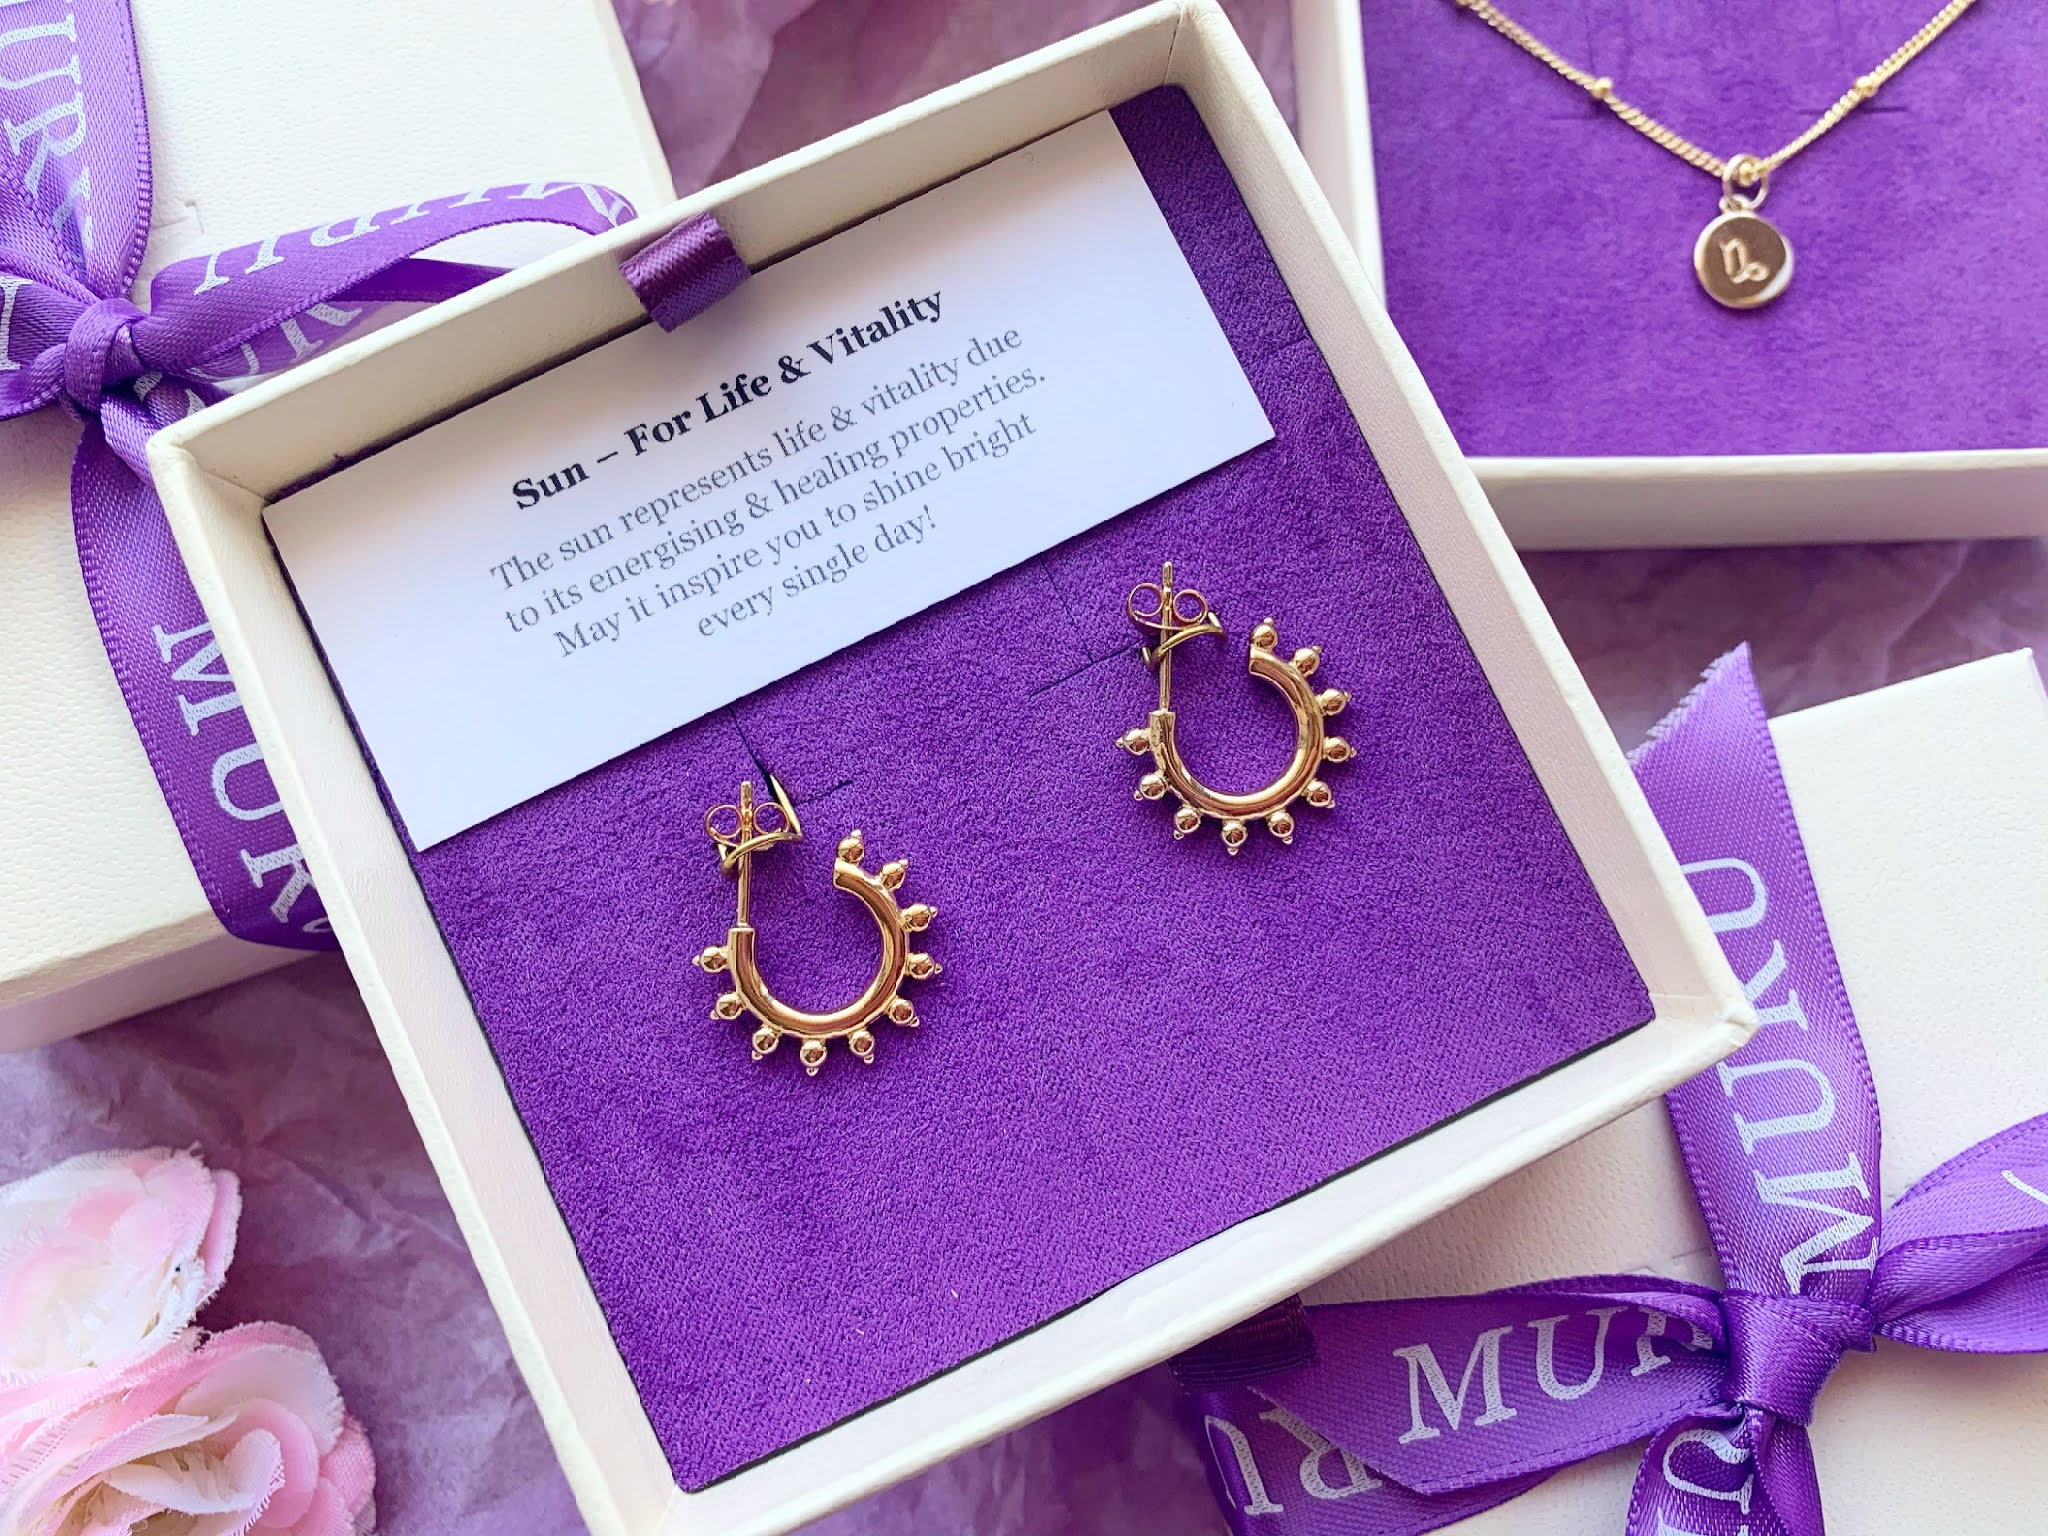 Muru Jewellery Life&Vitality Sun Stud Hoop Gold Earrings in their gift wrapped box